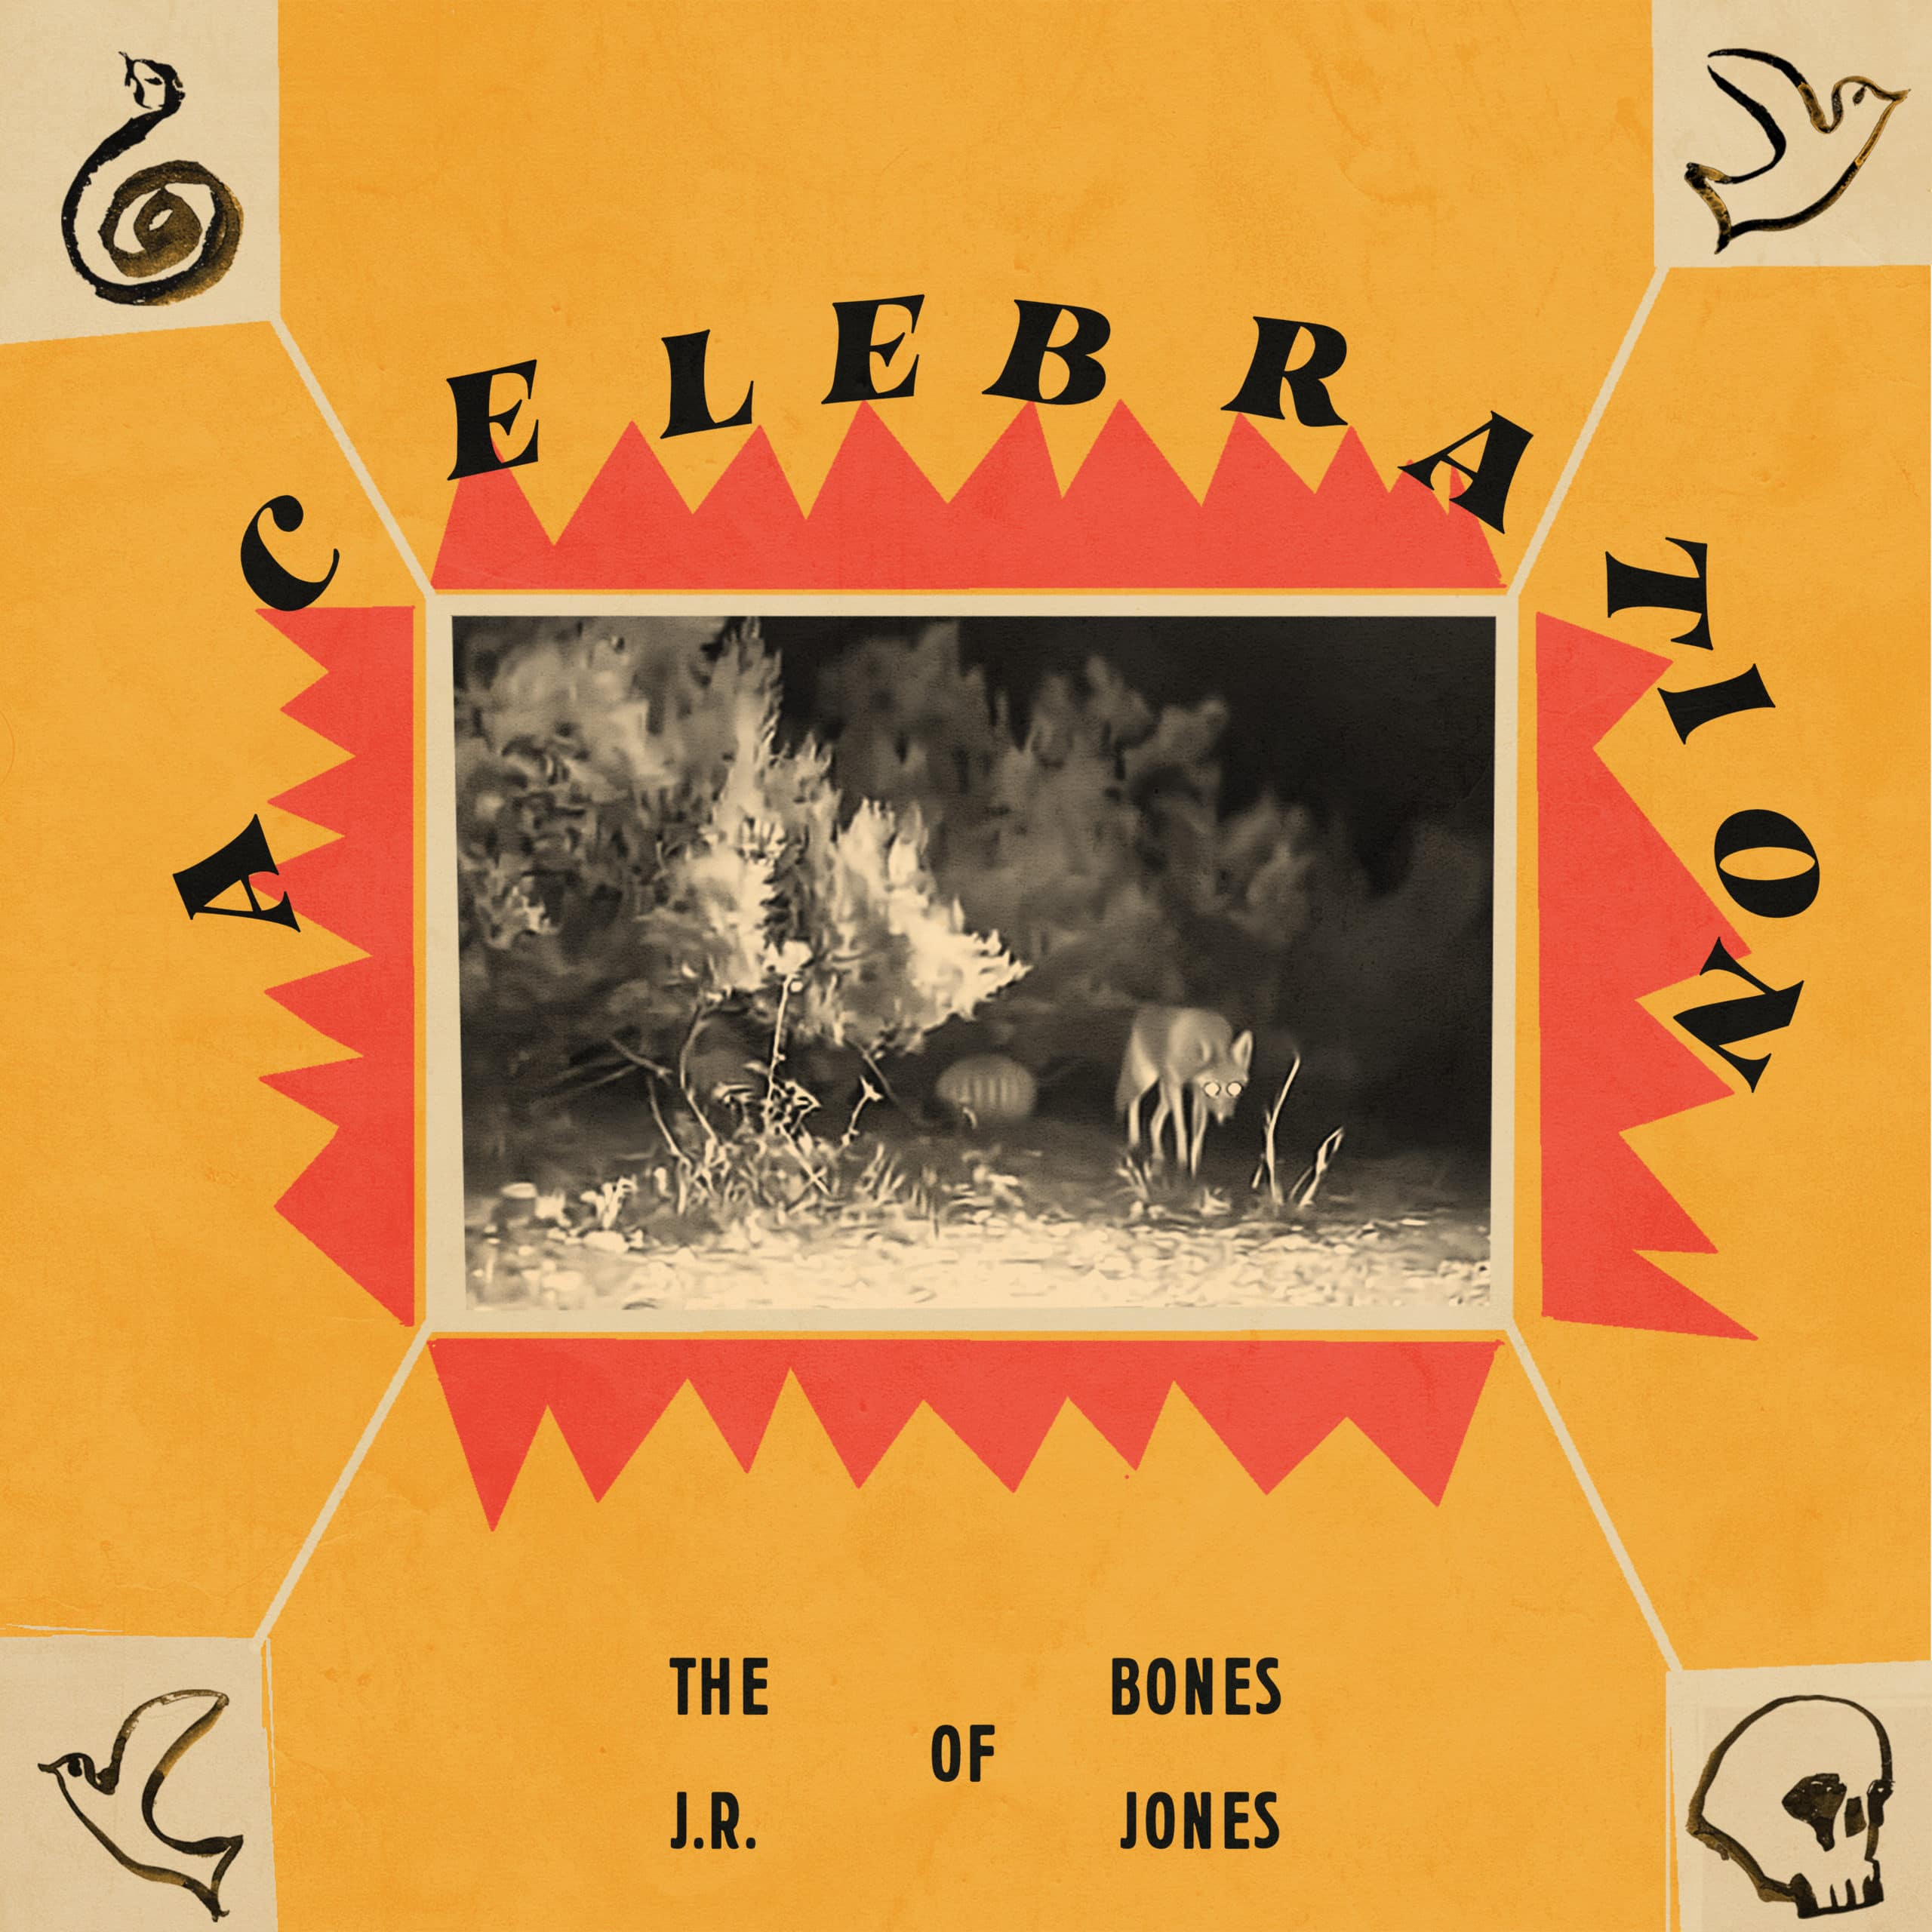 The cover to The Bones of J.R. Jones' EP, A Celebration